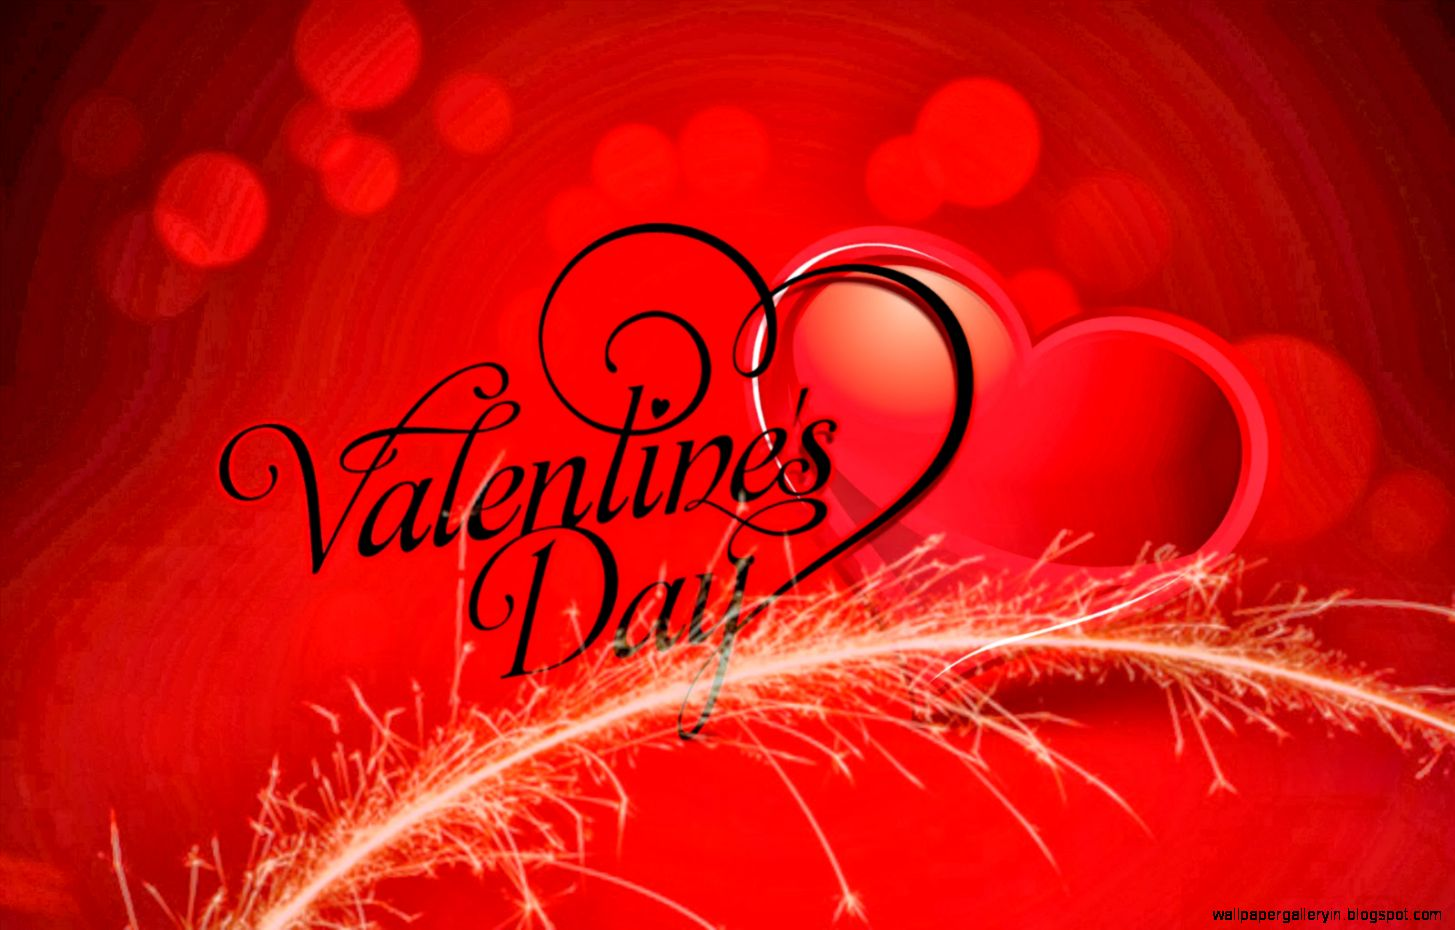 Valentine Live Wallpaper Hd Free Android Download | Latest Mobile